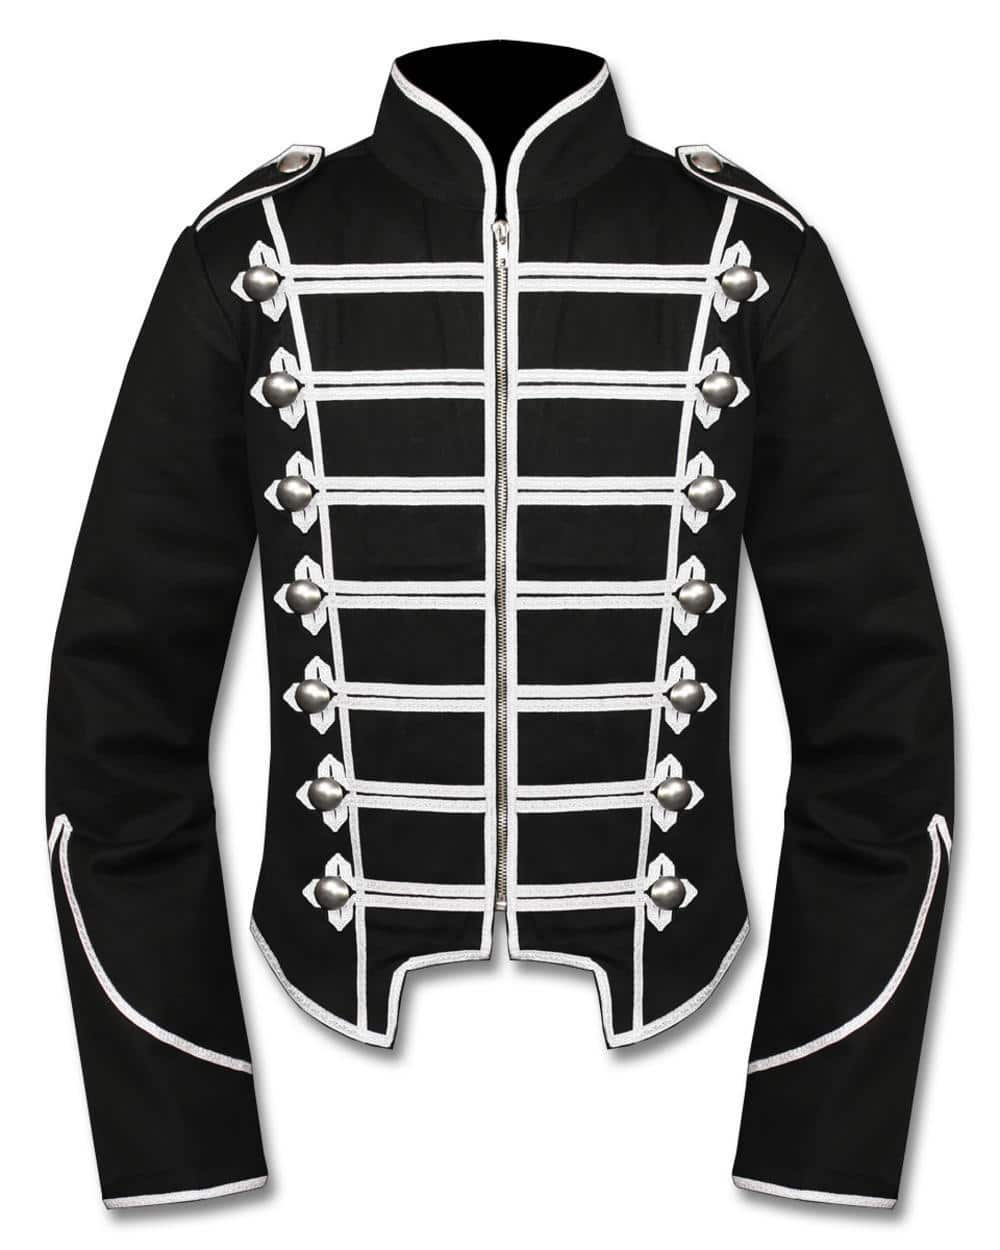 Mens Black Silver Military Drummer Jacket Custom Made Kilt And Style Marching Band Traditional Jackets For Men Best